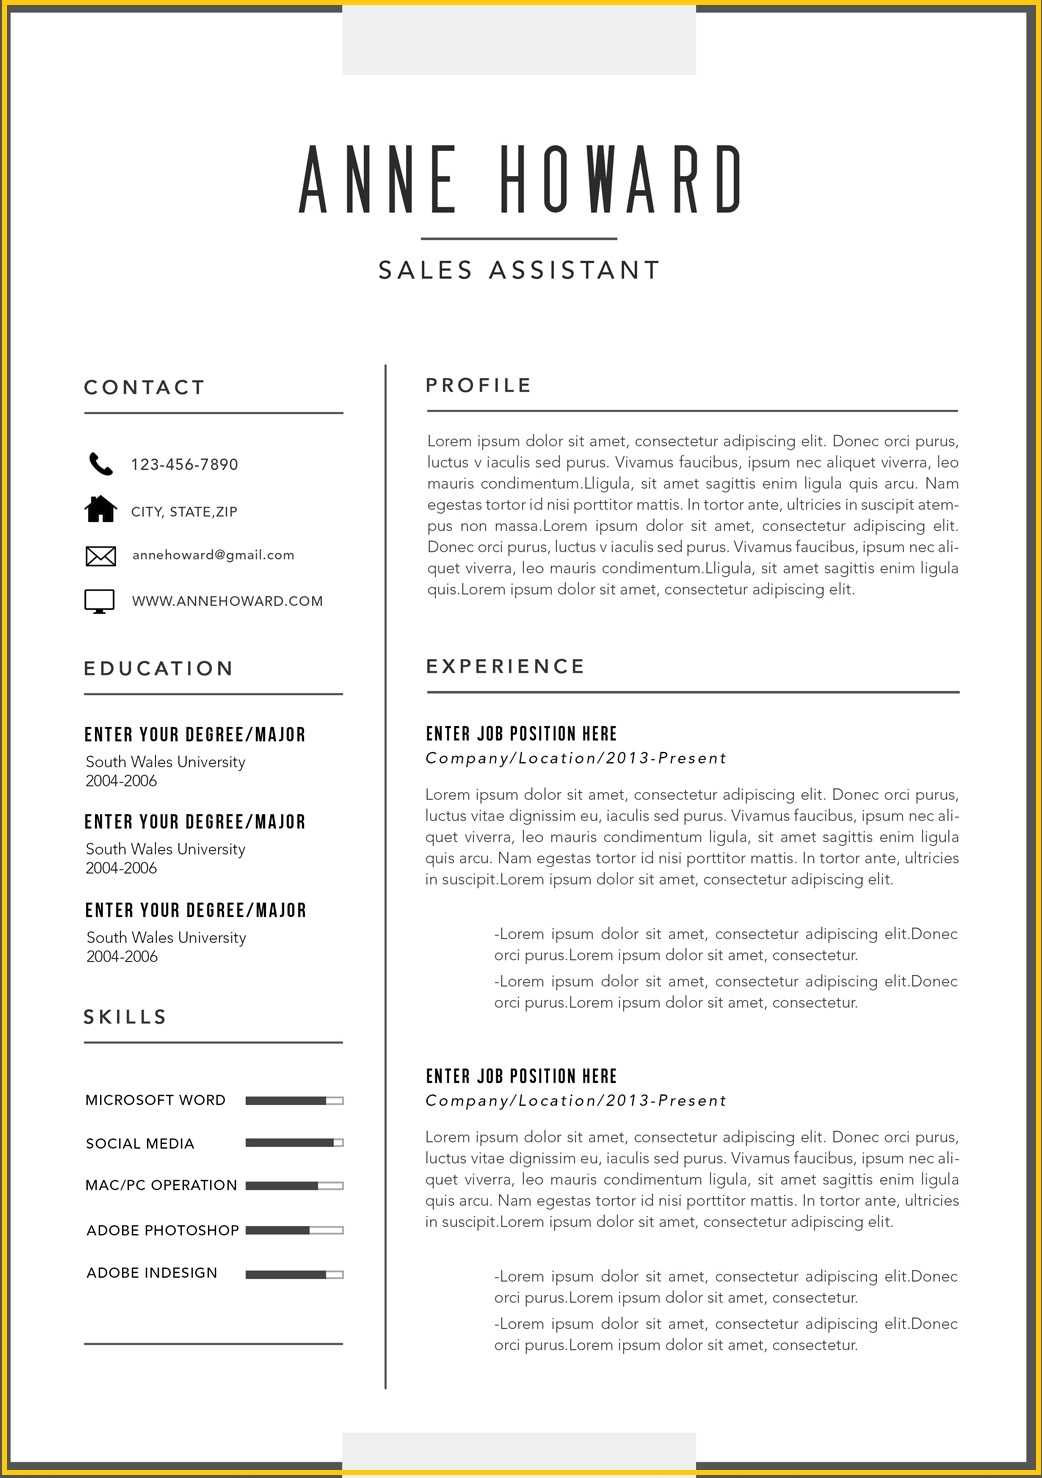 free modern resume templates word free modern resume templates microsoft word - Free Modern Resume Templates For Word